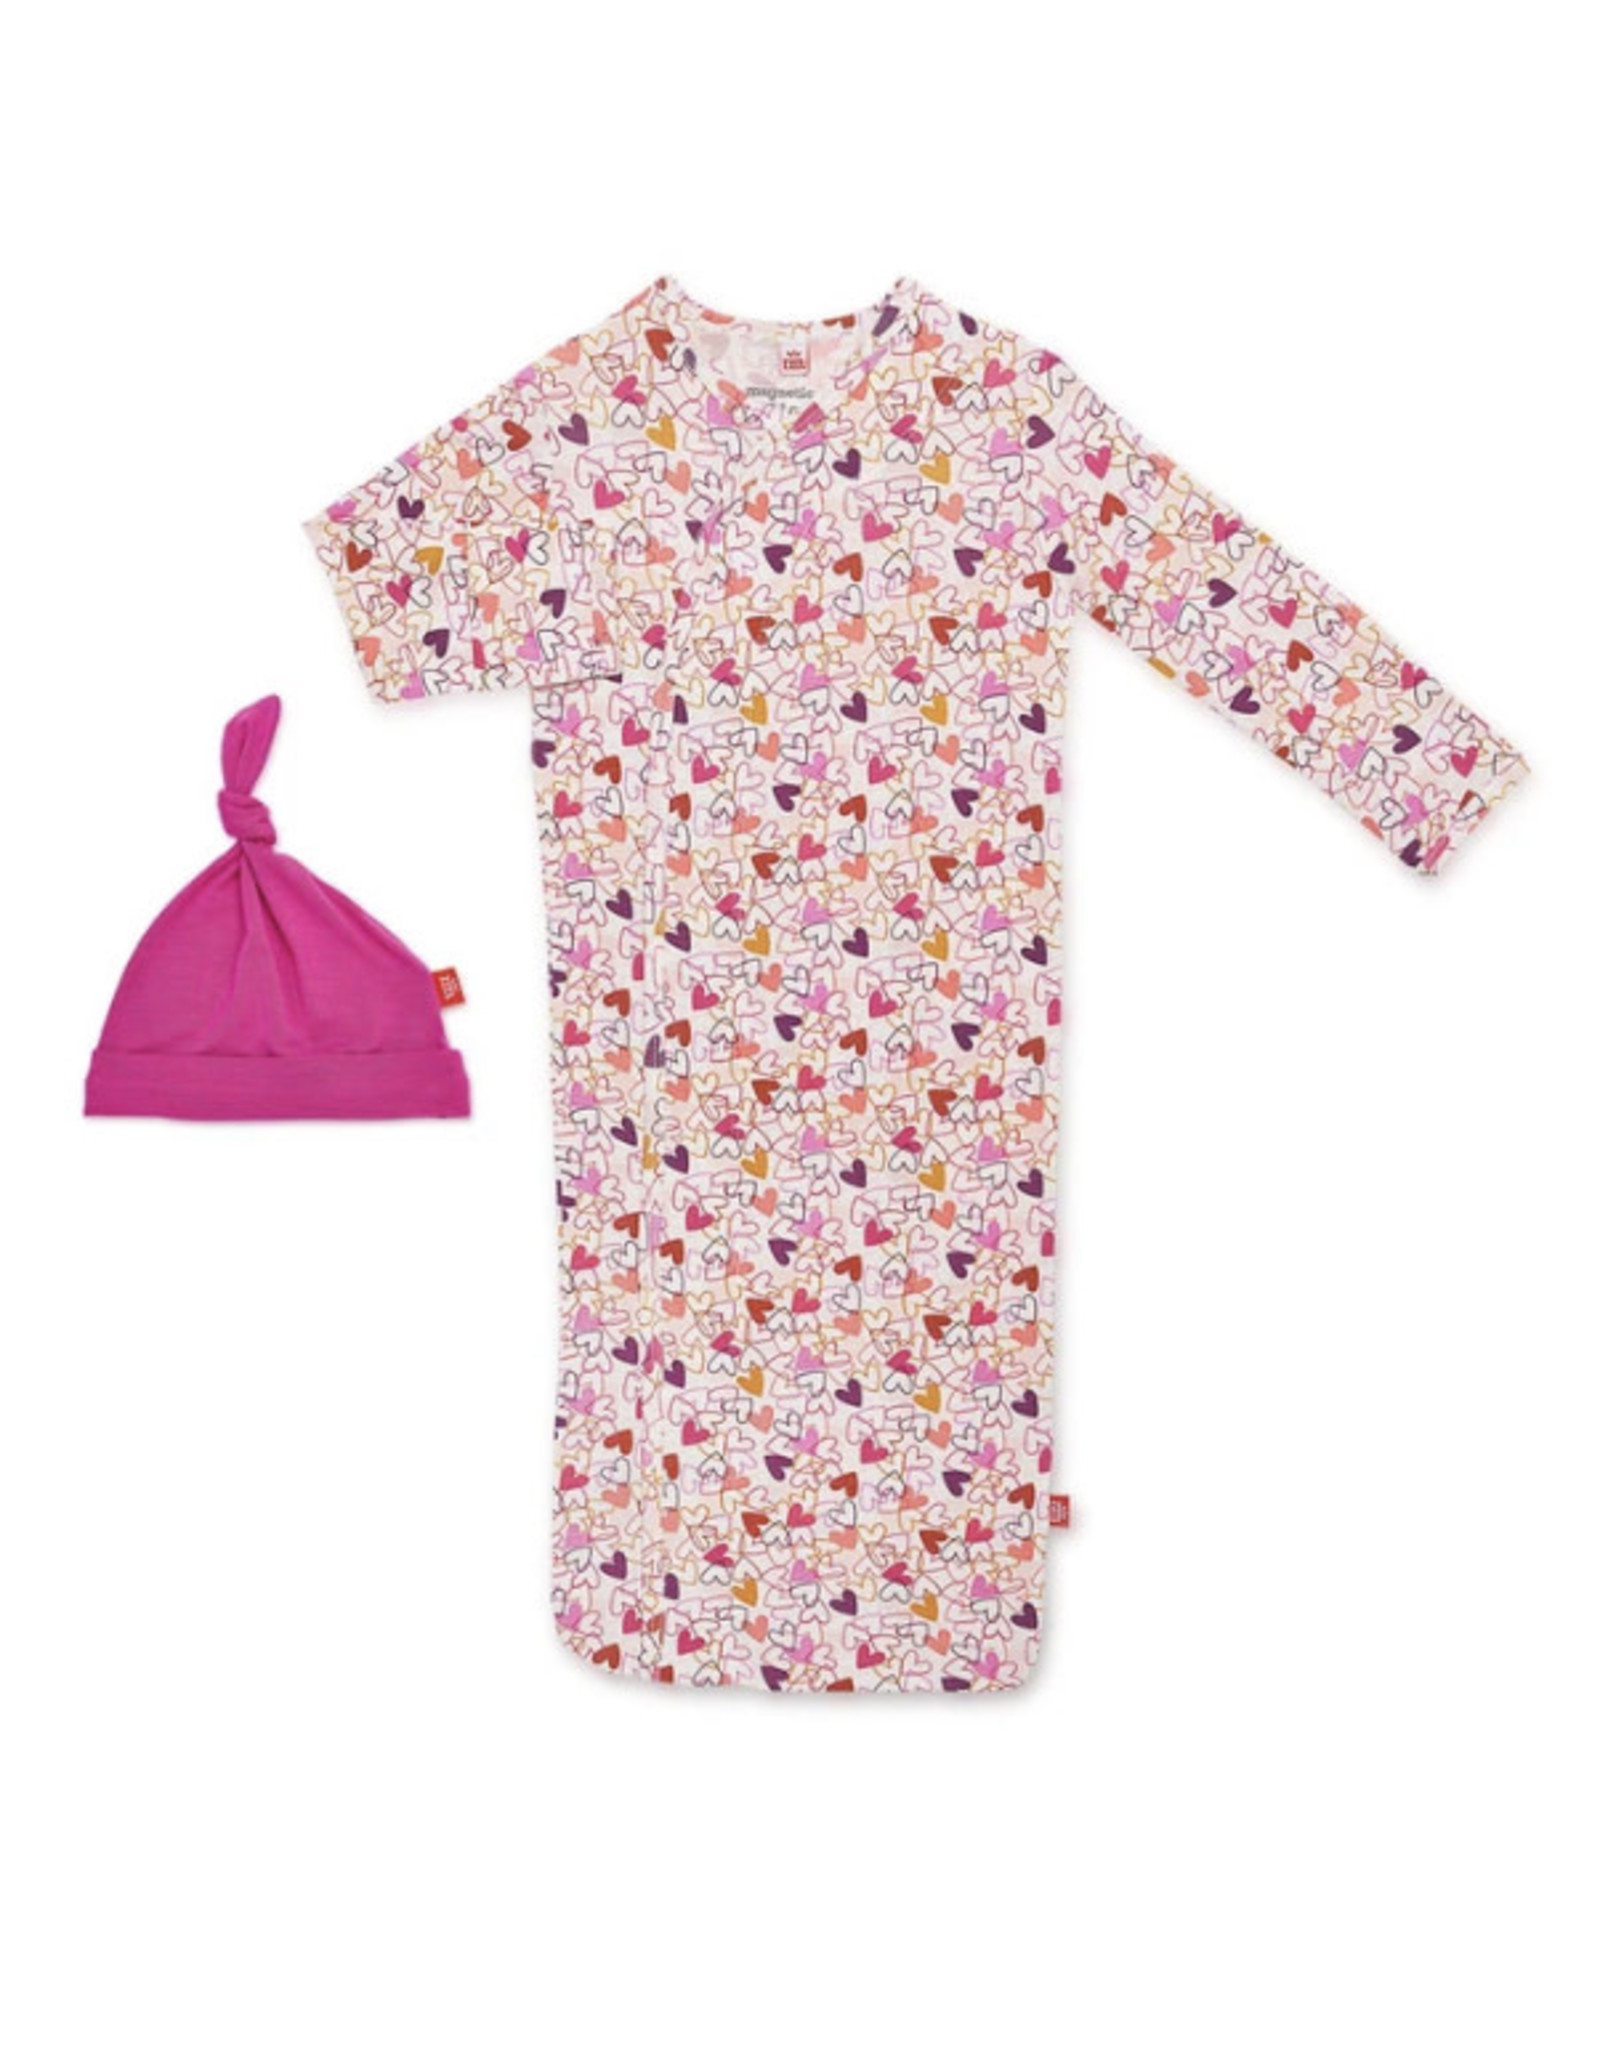 Magnetic Me Magnetic Me- Heart To Heart Modal Magnetic Gown & Hat Set 0-3M